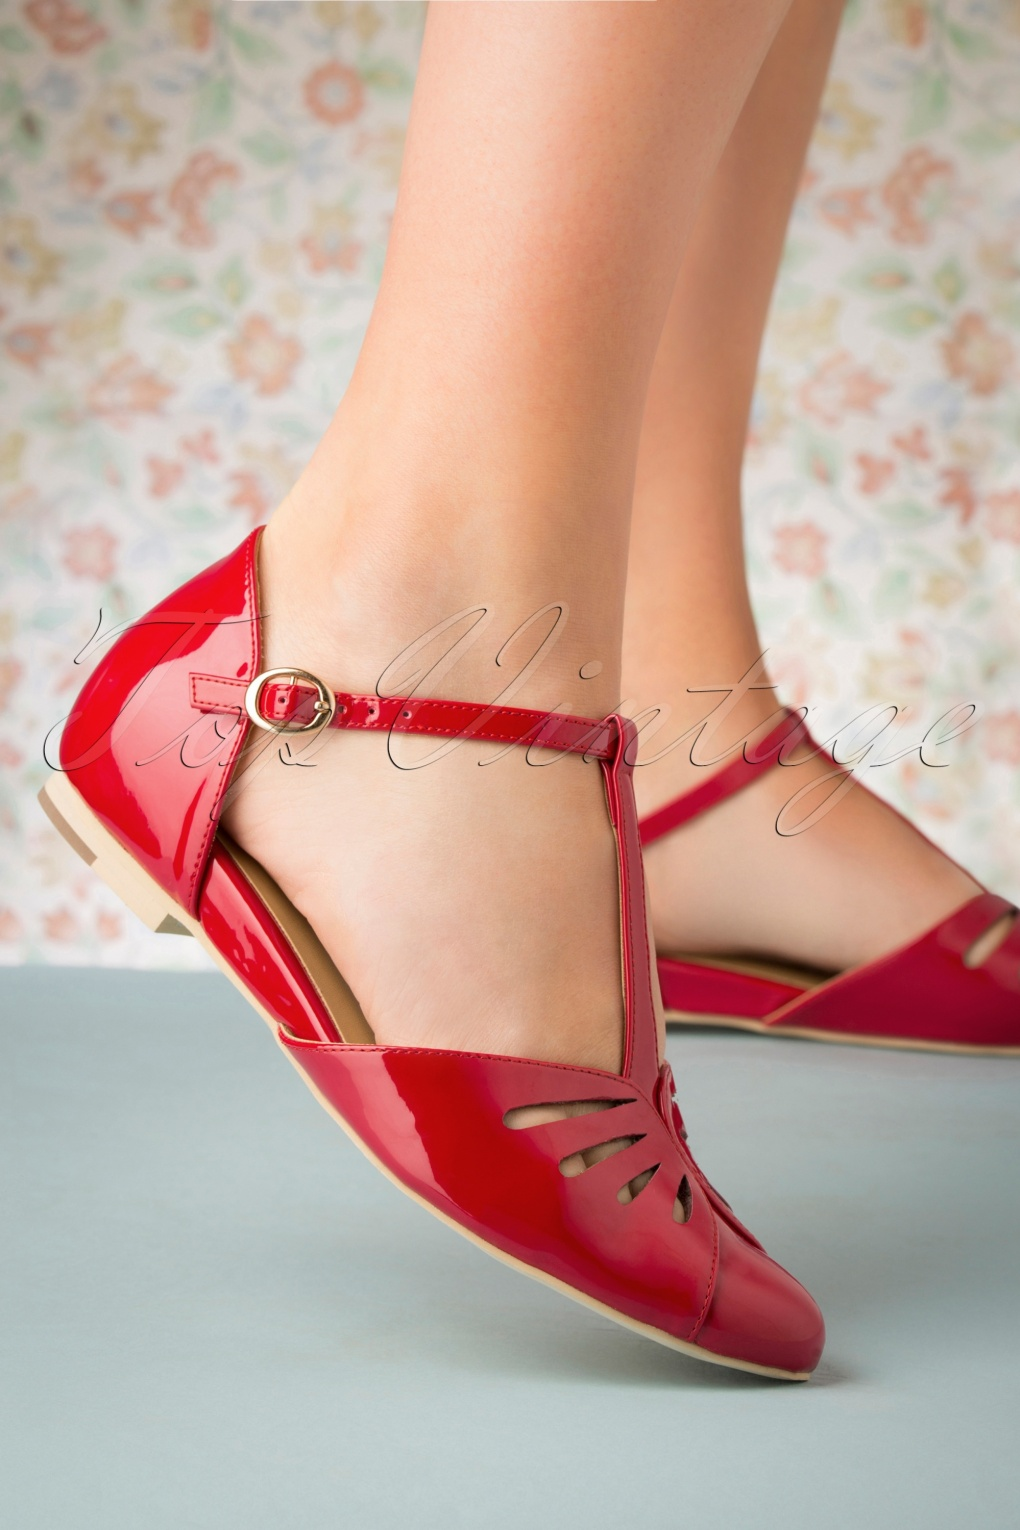 Pin Up Shoes- Heels, Pumps & Flats 50s Firenze T-Strap Flats in Deep Red �99.24 AT vintagedancer.com